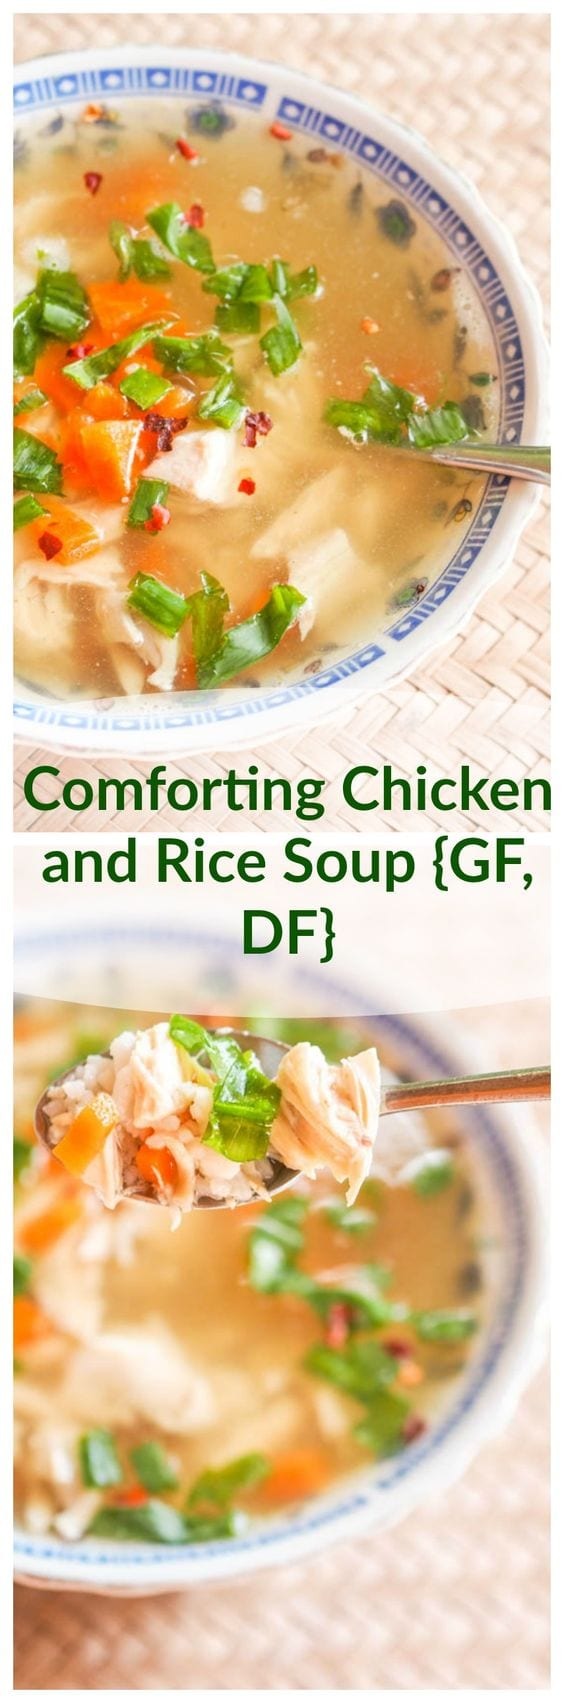 This Chicken and rice soup all starts from a fragrant and flavorful home made chicken broth. That is the star of this recipe and what turns this simple soup into your new favorite comfort meal. Gluten Free and Dairy Free. #soup #chickensoup #glutenfree #dairyfree #Lunch #dinner #healthy